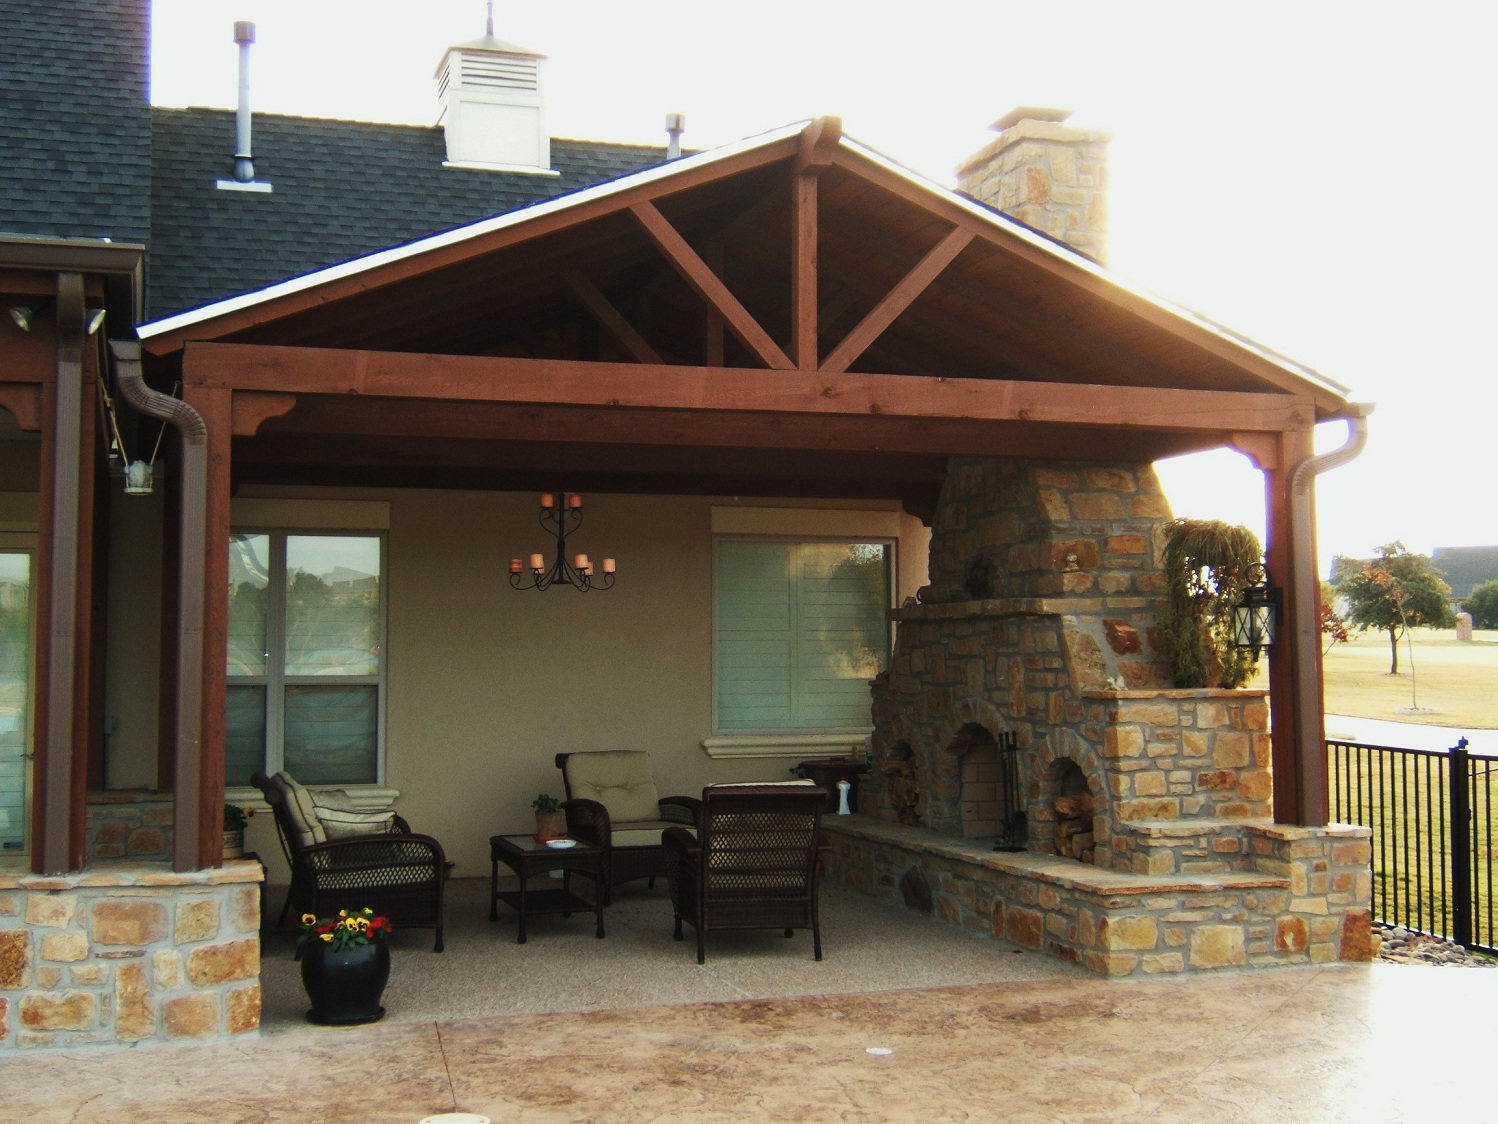 Outdoor patio cover ideas dixq design on vine for Patio cover ideas designs